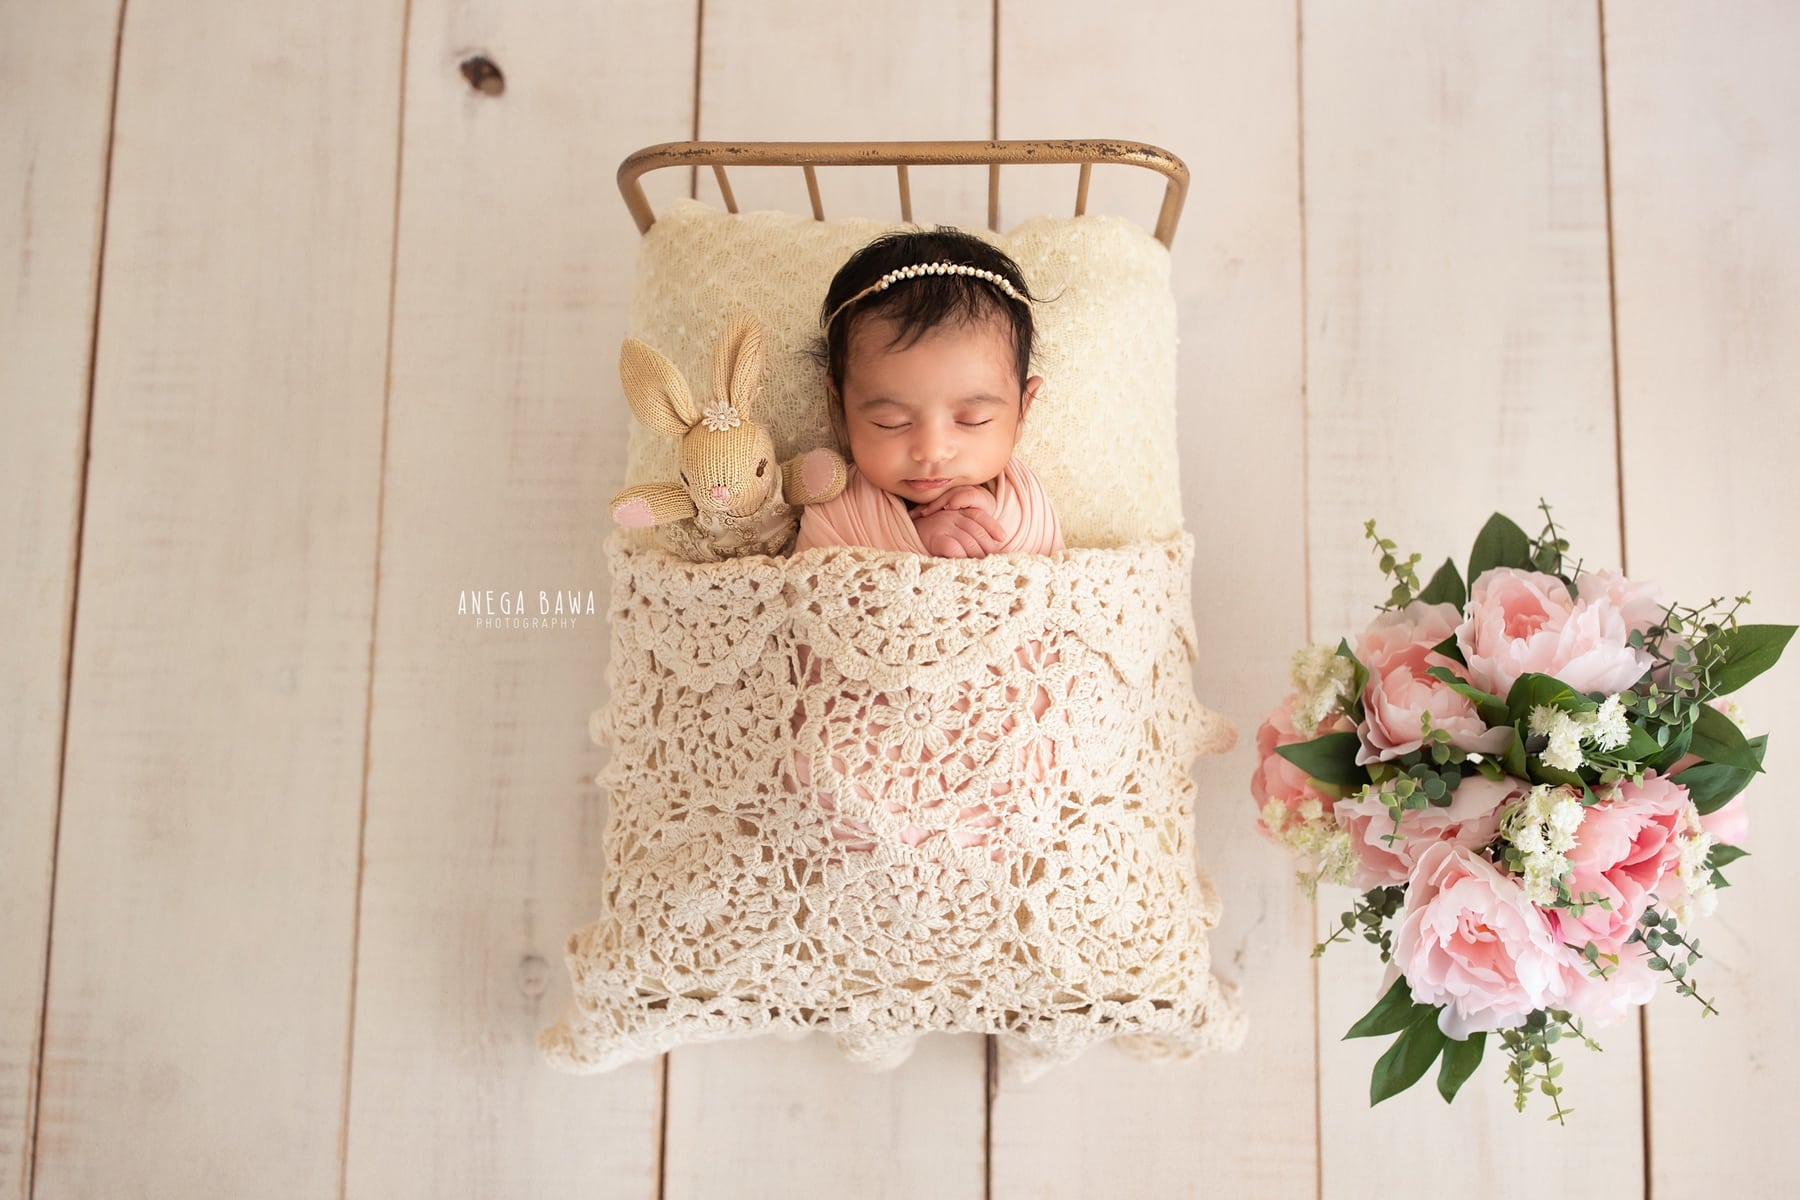 white pink flower newborn photography delhi 7 days baby boy photoshoot gurgaon anega bawa